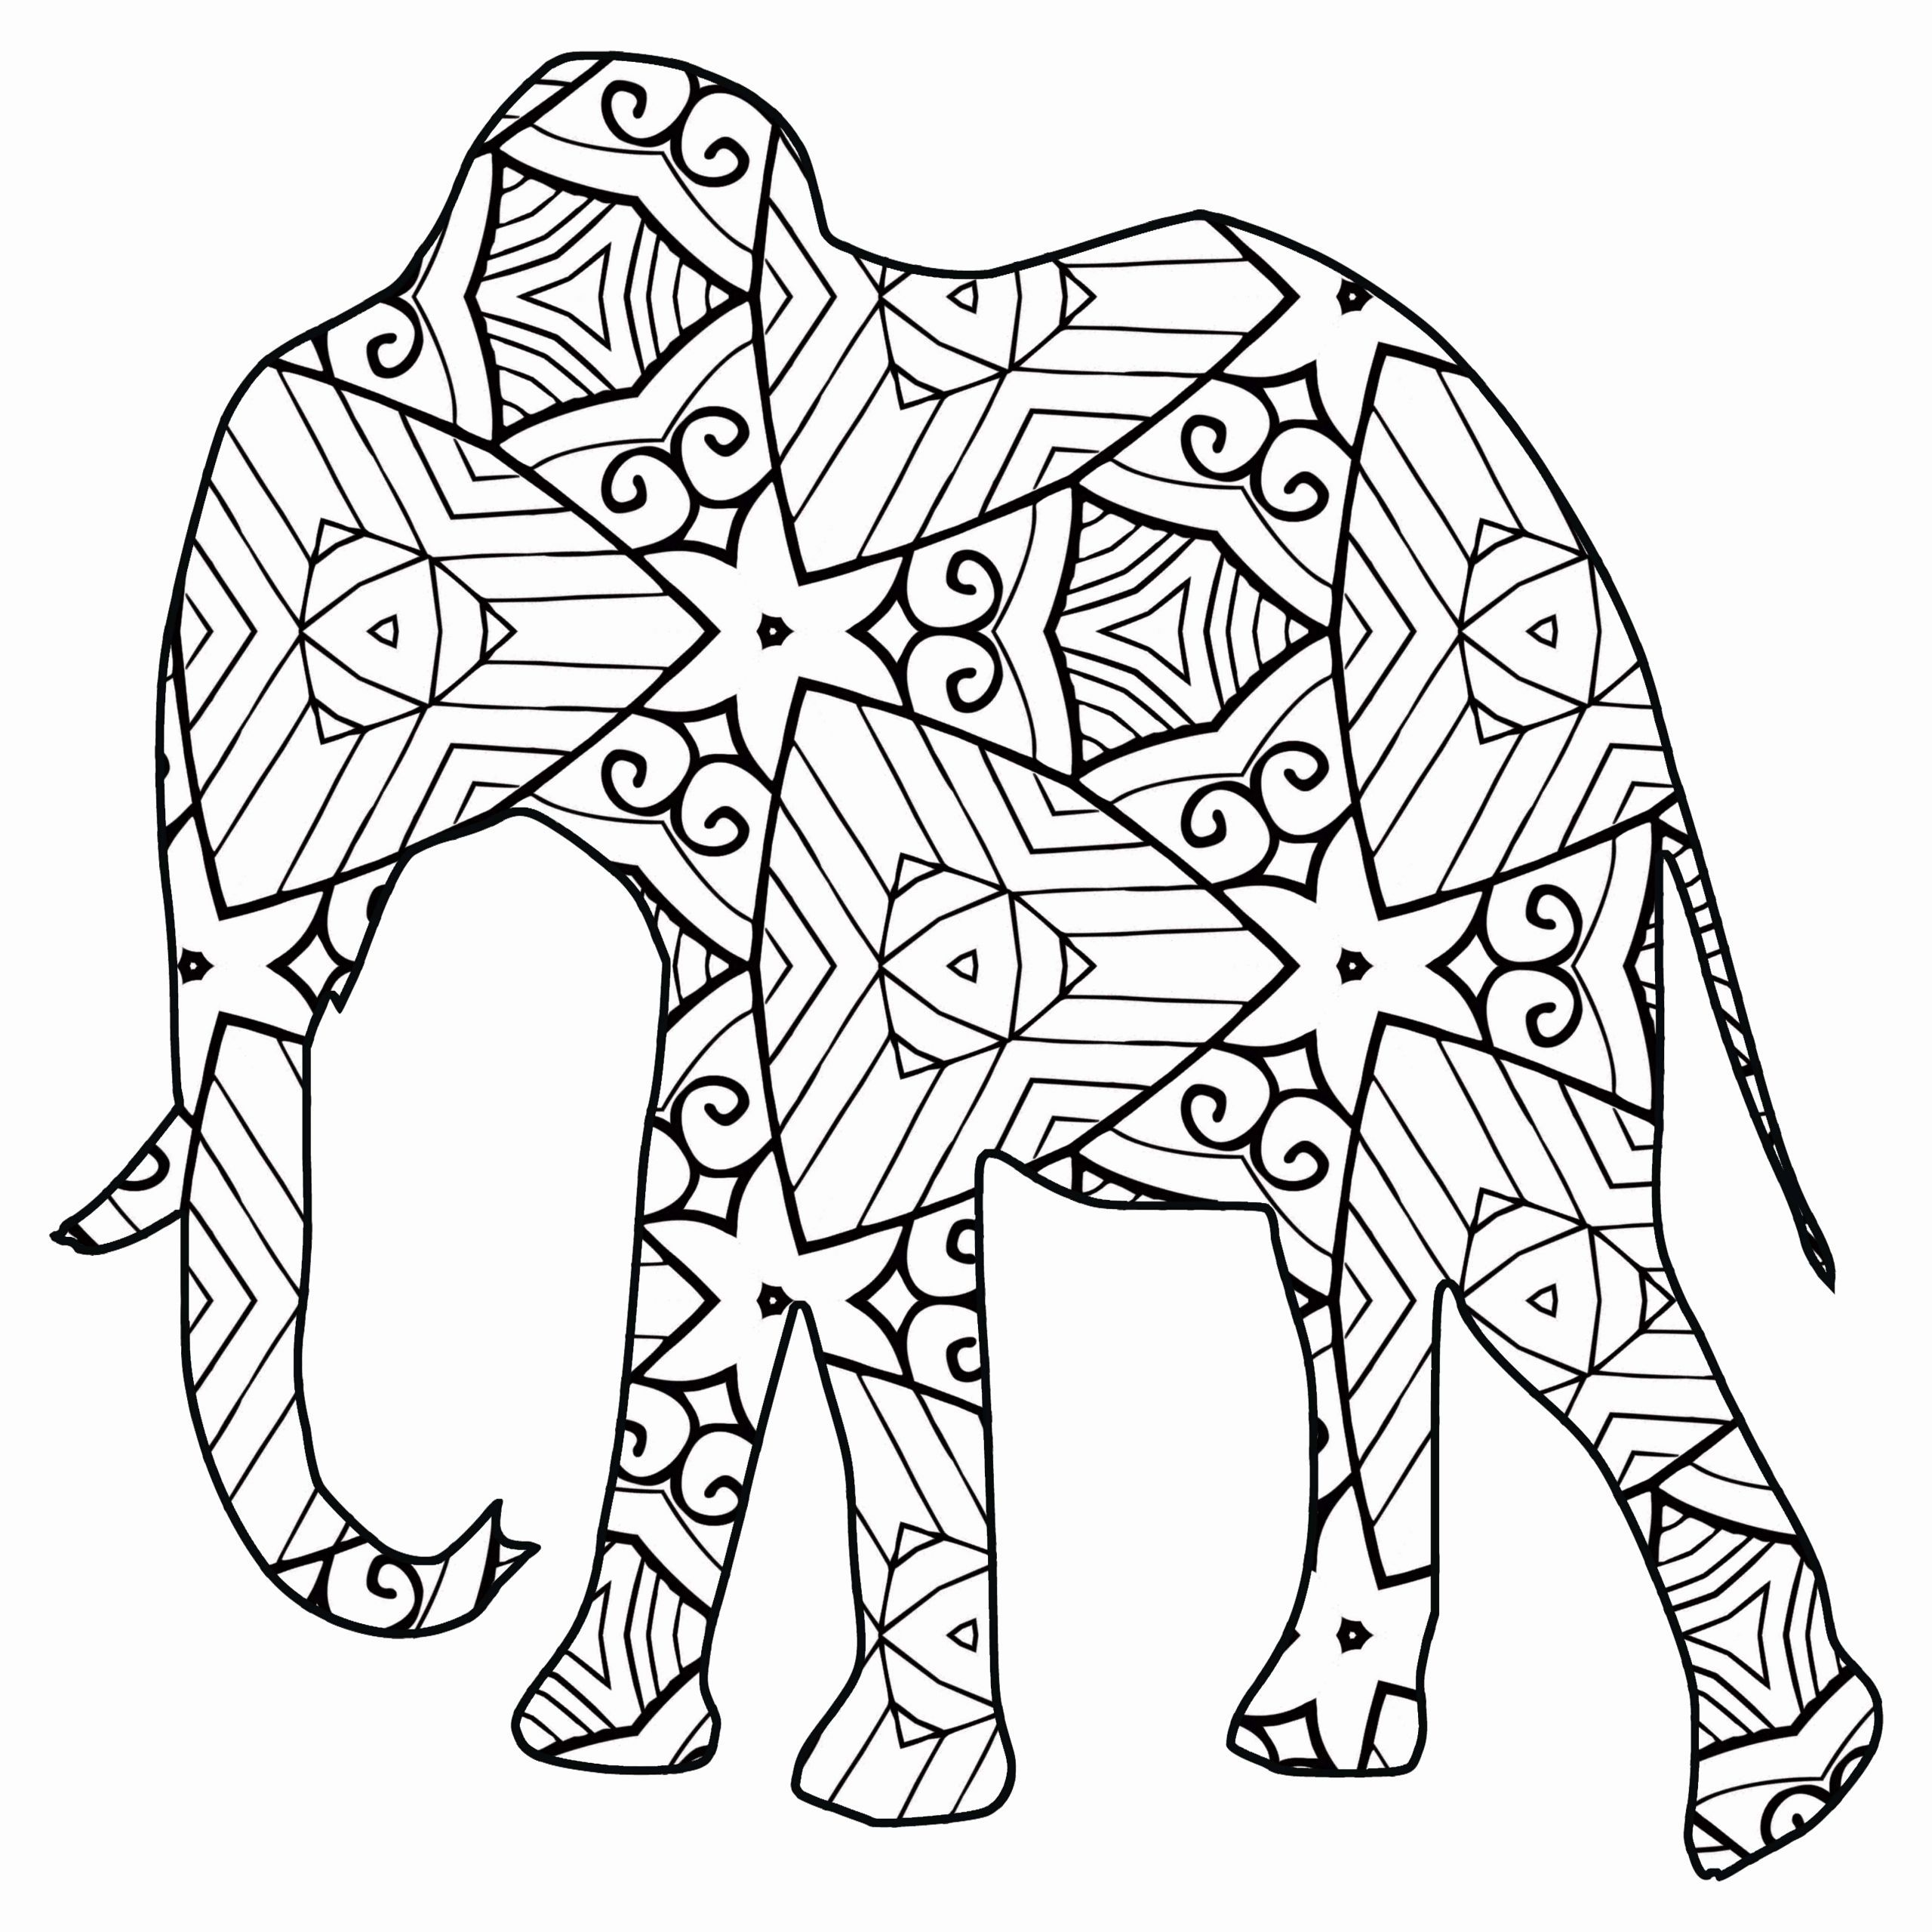 Free Printable Coloring Pages Animals Fresh 30 Free Printable Geometric Animal Coloring P In 2020 Geometric Coloring Pages Animal Coloring Books Pokemon Coloring Pages